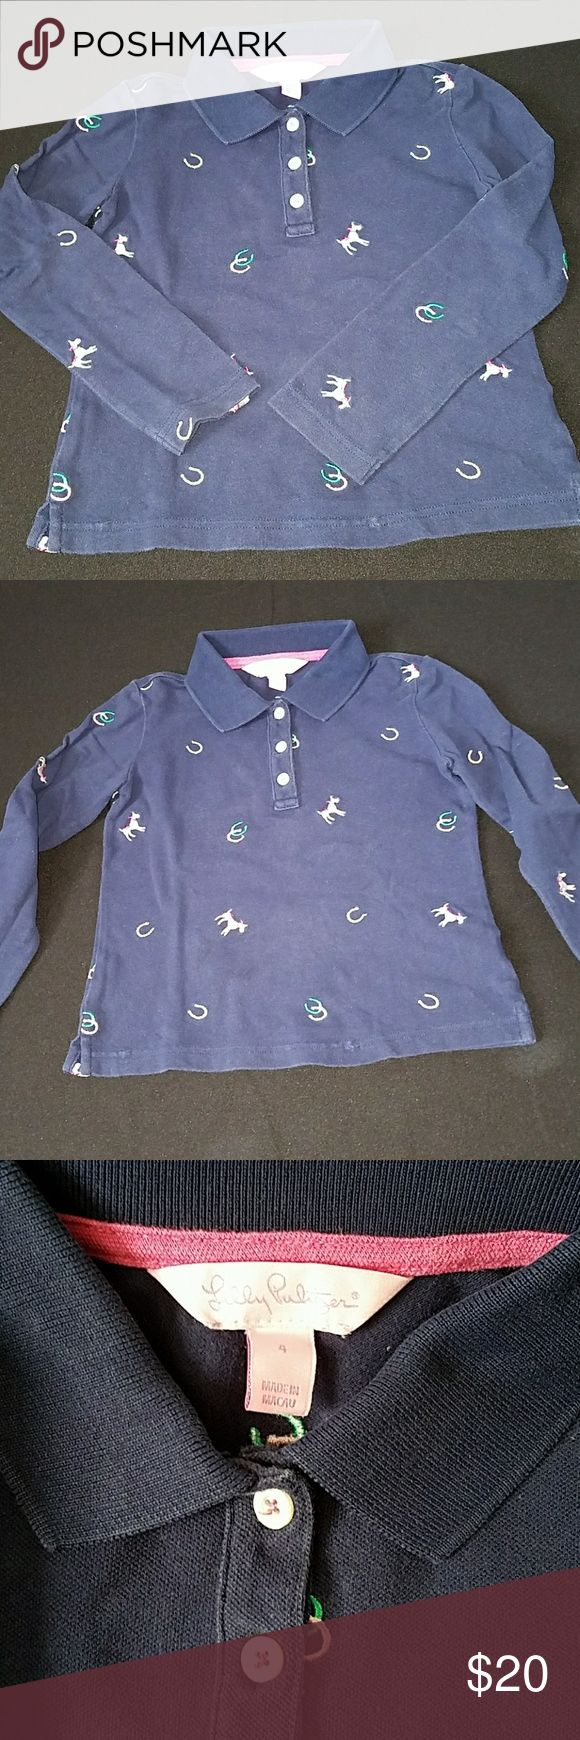 Lilly Pulitzer Kids 4 Ponies Horseshoes Polo Shirt Lilly Pulitzer Kids 4 Ponies Horseshoes Polo Shirt.  Probably little girls but my son wore it for a derby party  last year. Has slight fading from being washed (the typical true navy fading of LP.)   Smoke and pet free home. Lilly Pulitzer Shirts & Tops Polos